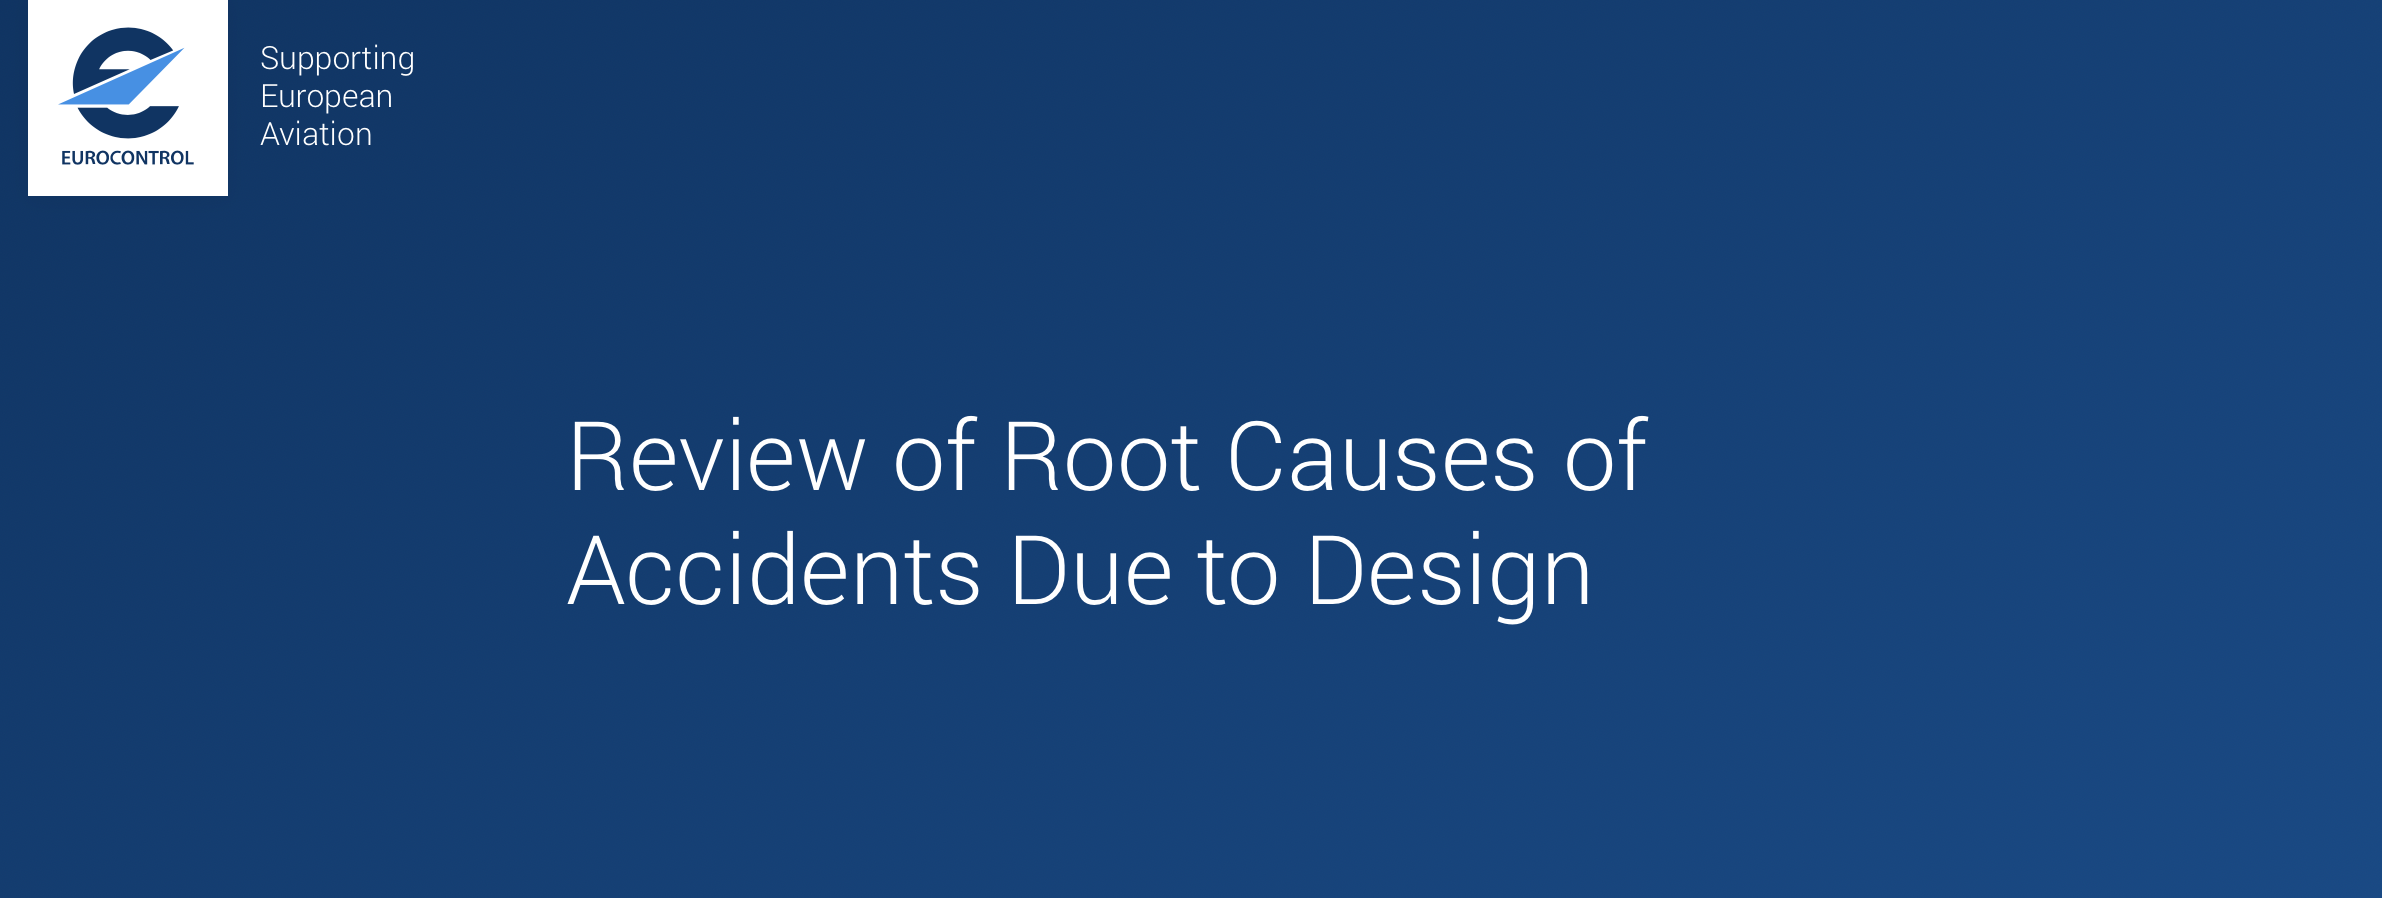 Review of Root Causes of Accidents Due to Design